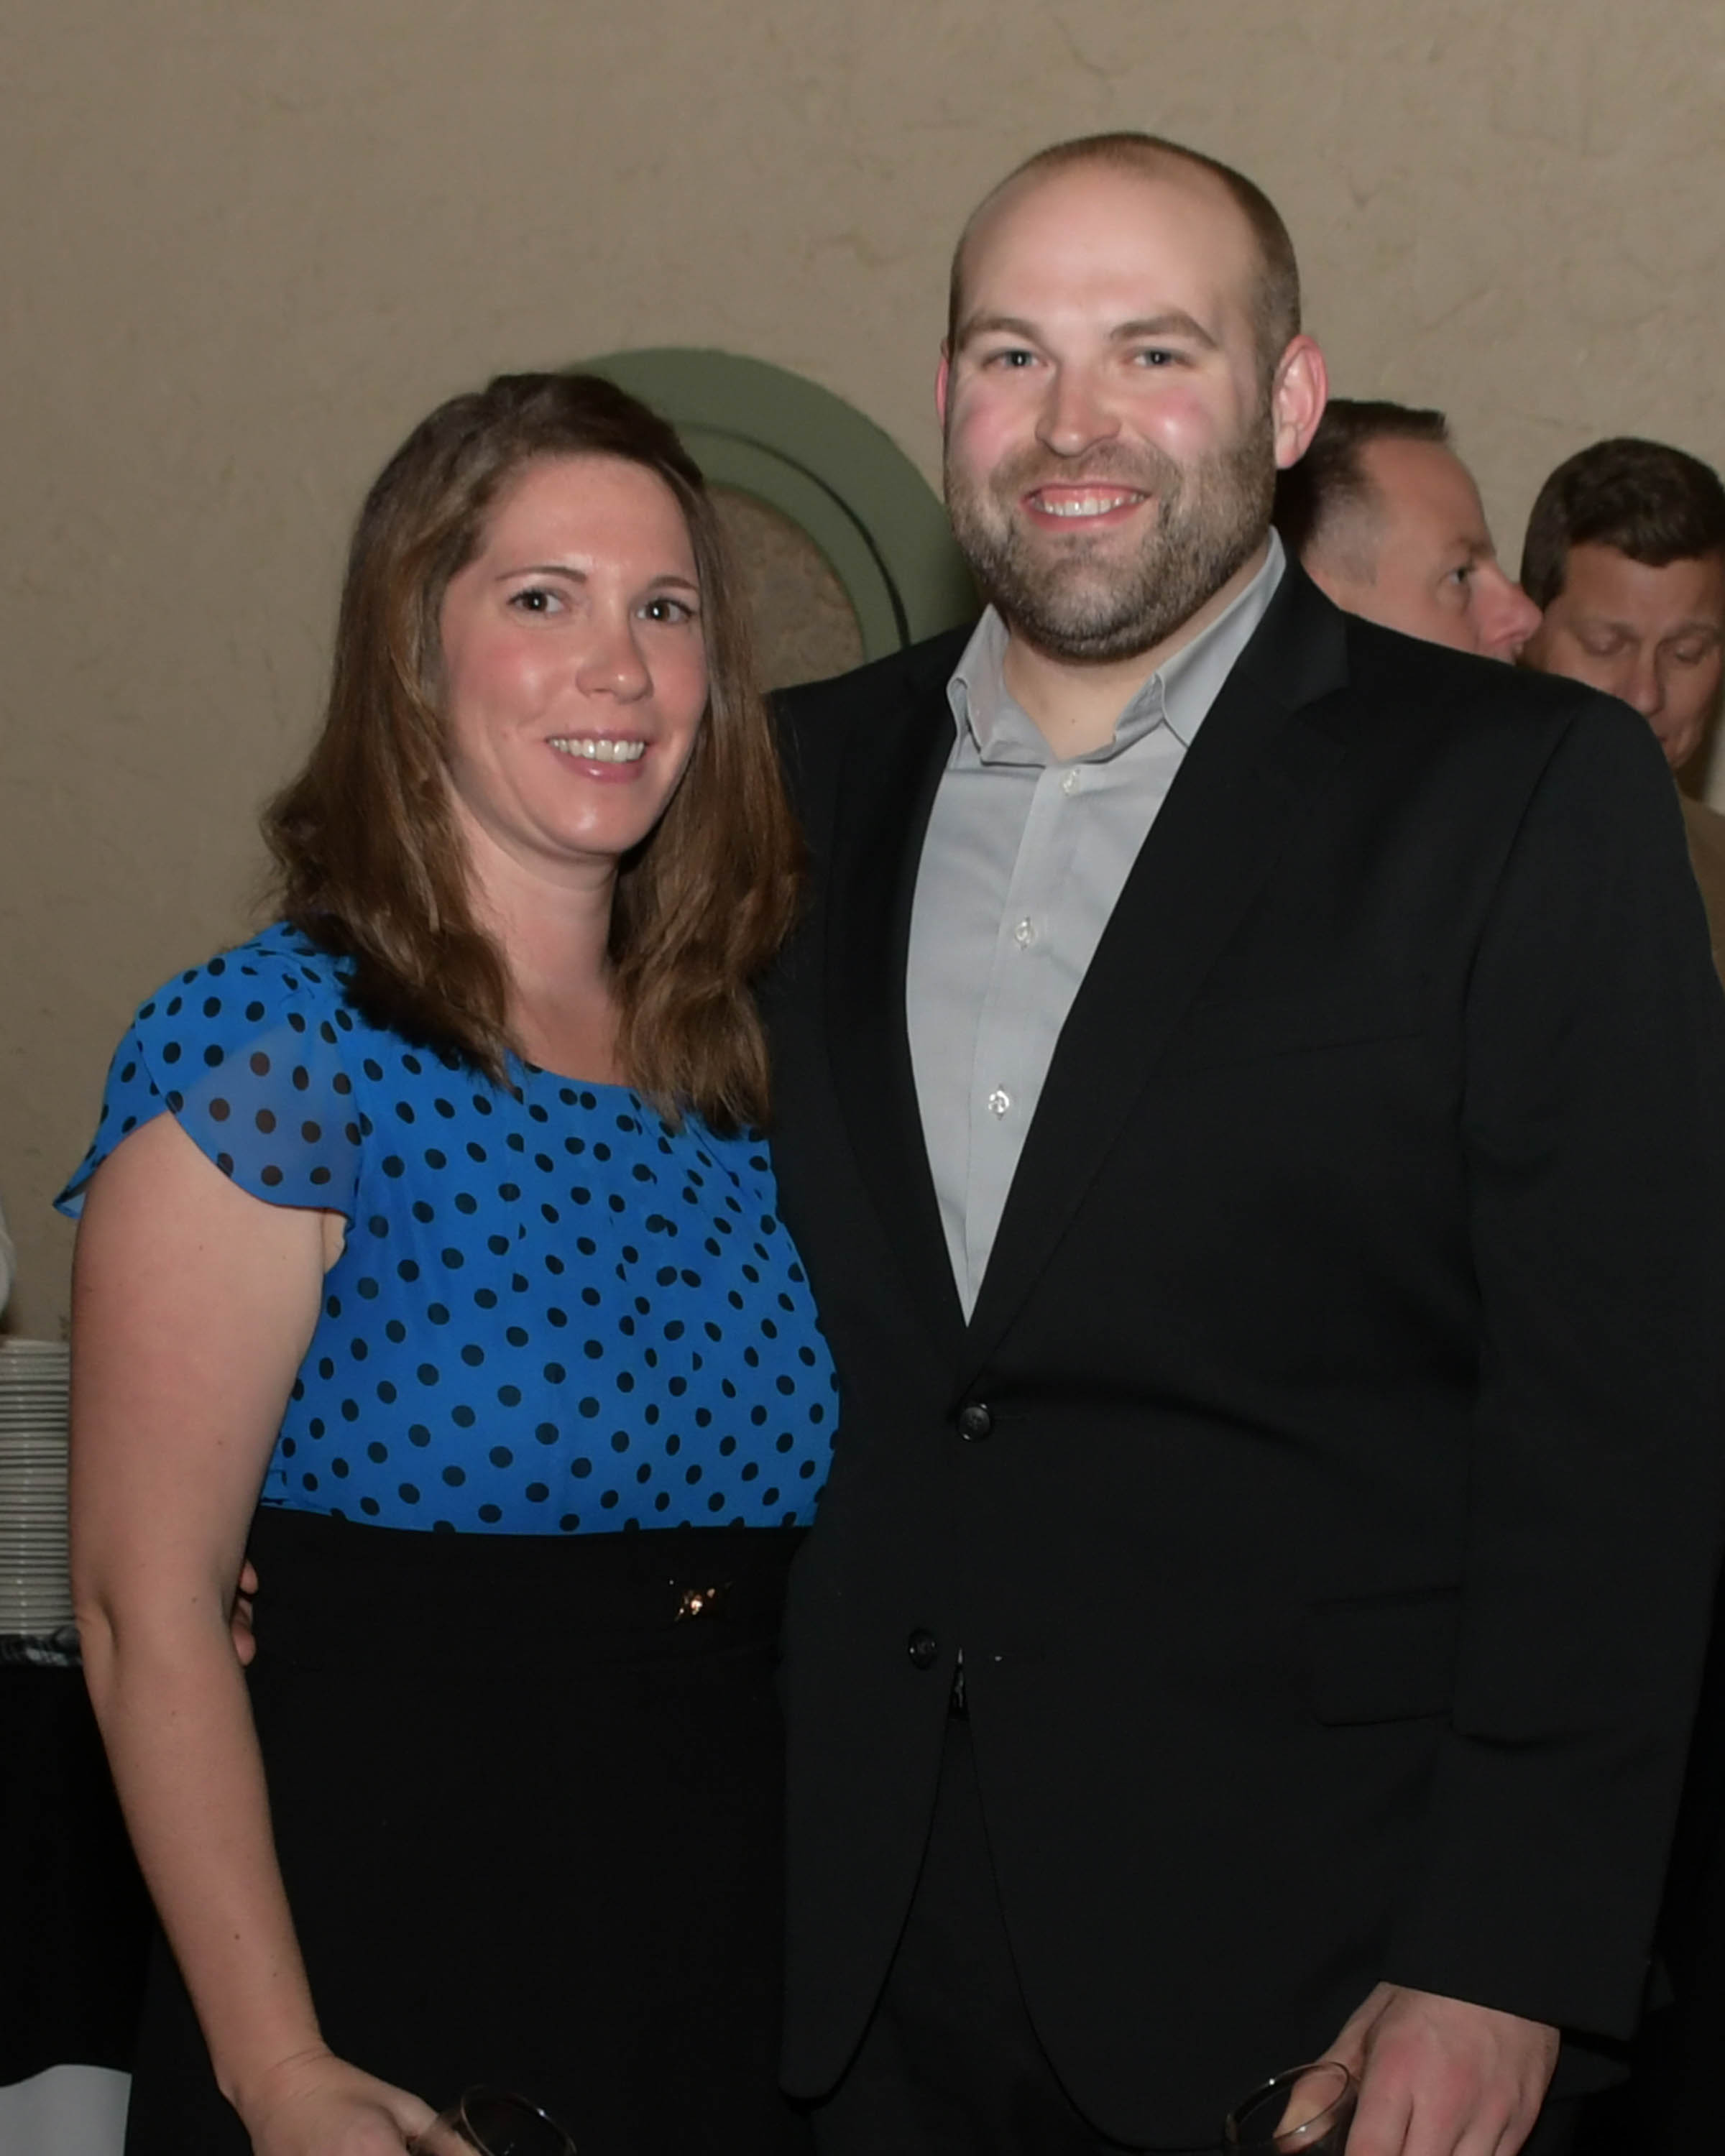 Vin Le Soir to benefit AIM Services, Inc. couple at event